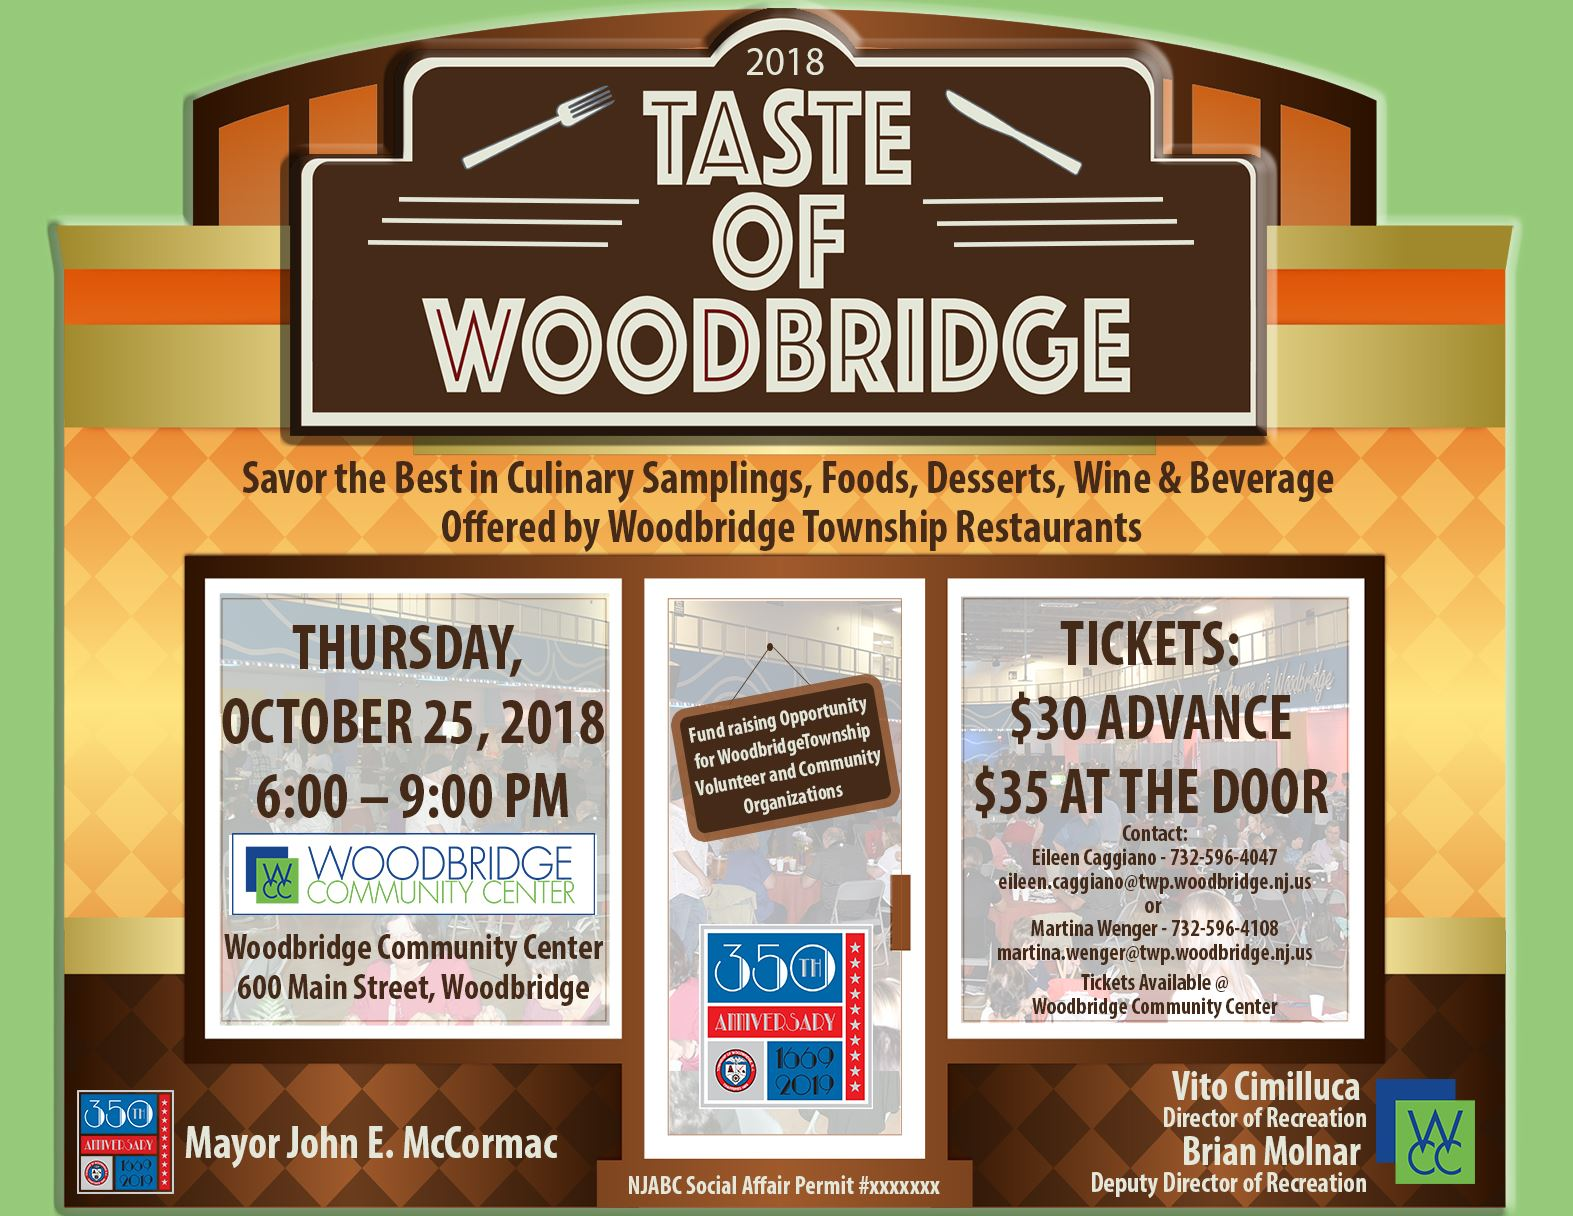 2018 Taste of Woodbridge